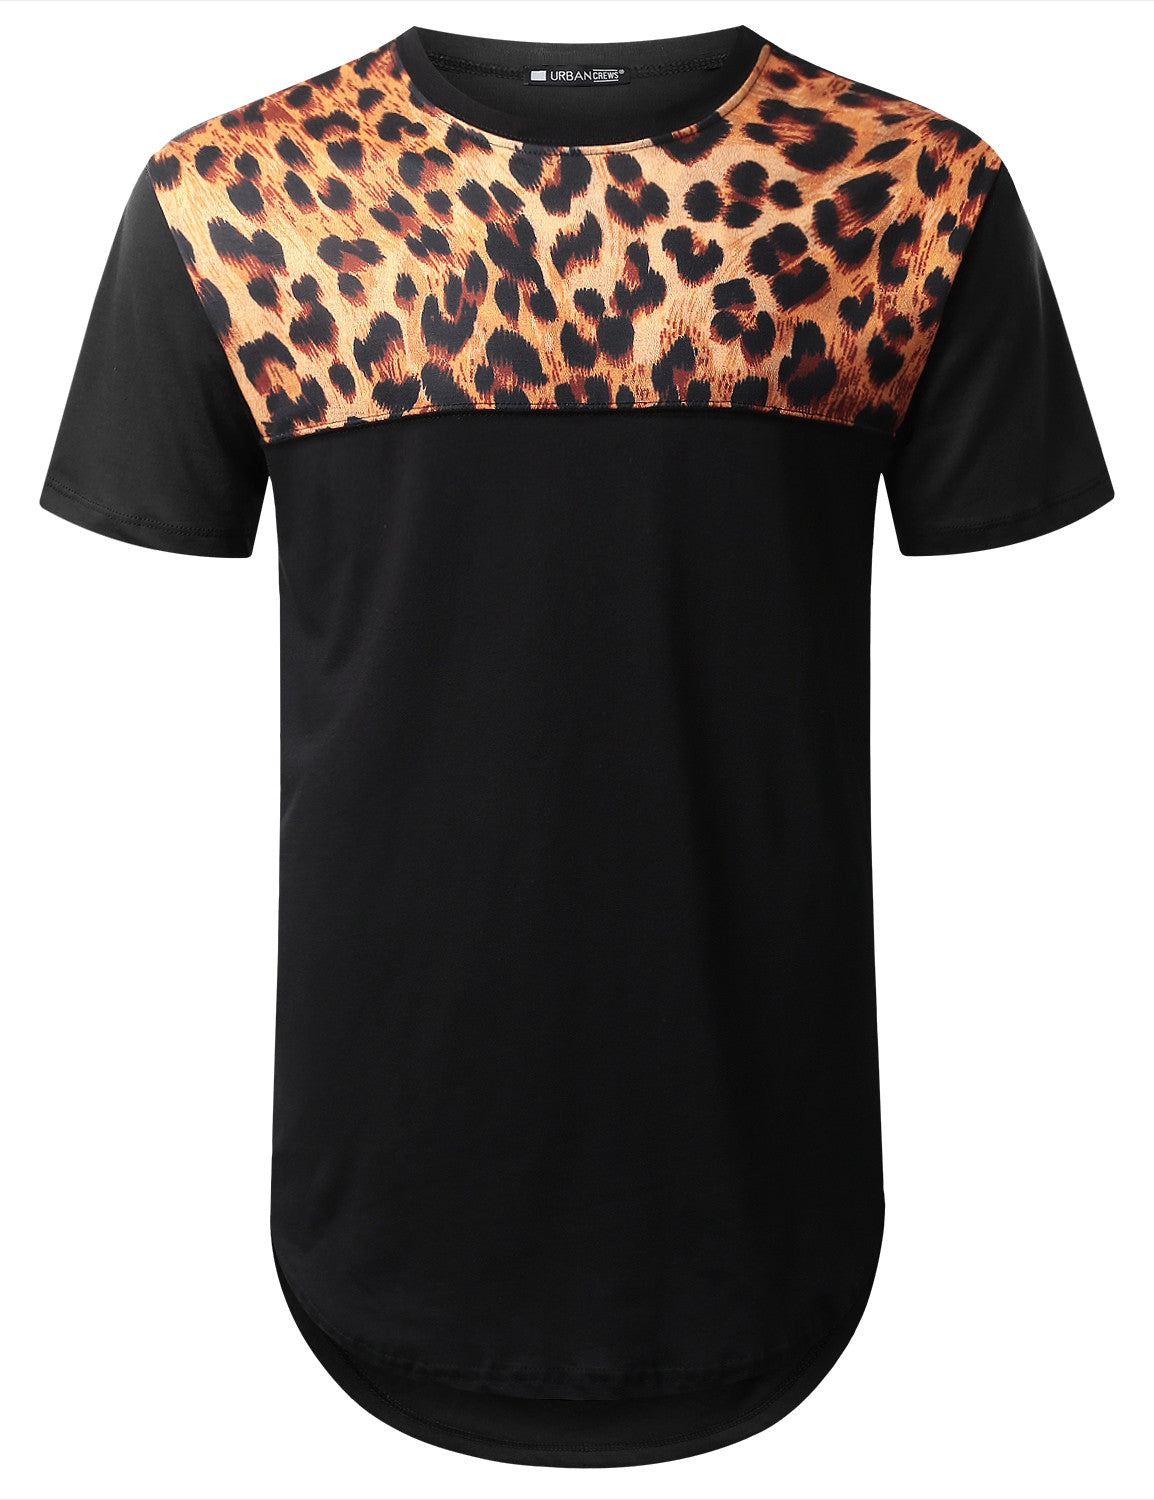 BLACK Cheetah Panel Longline T-shirt - URBANCREWS